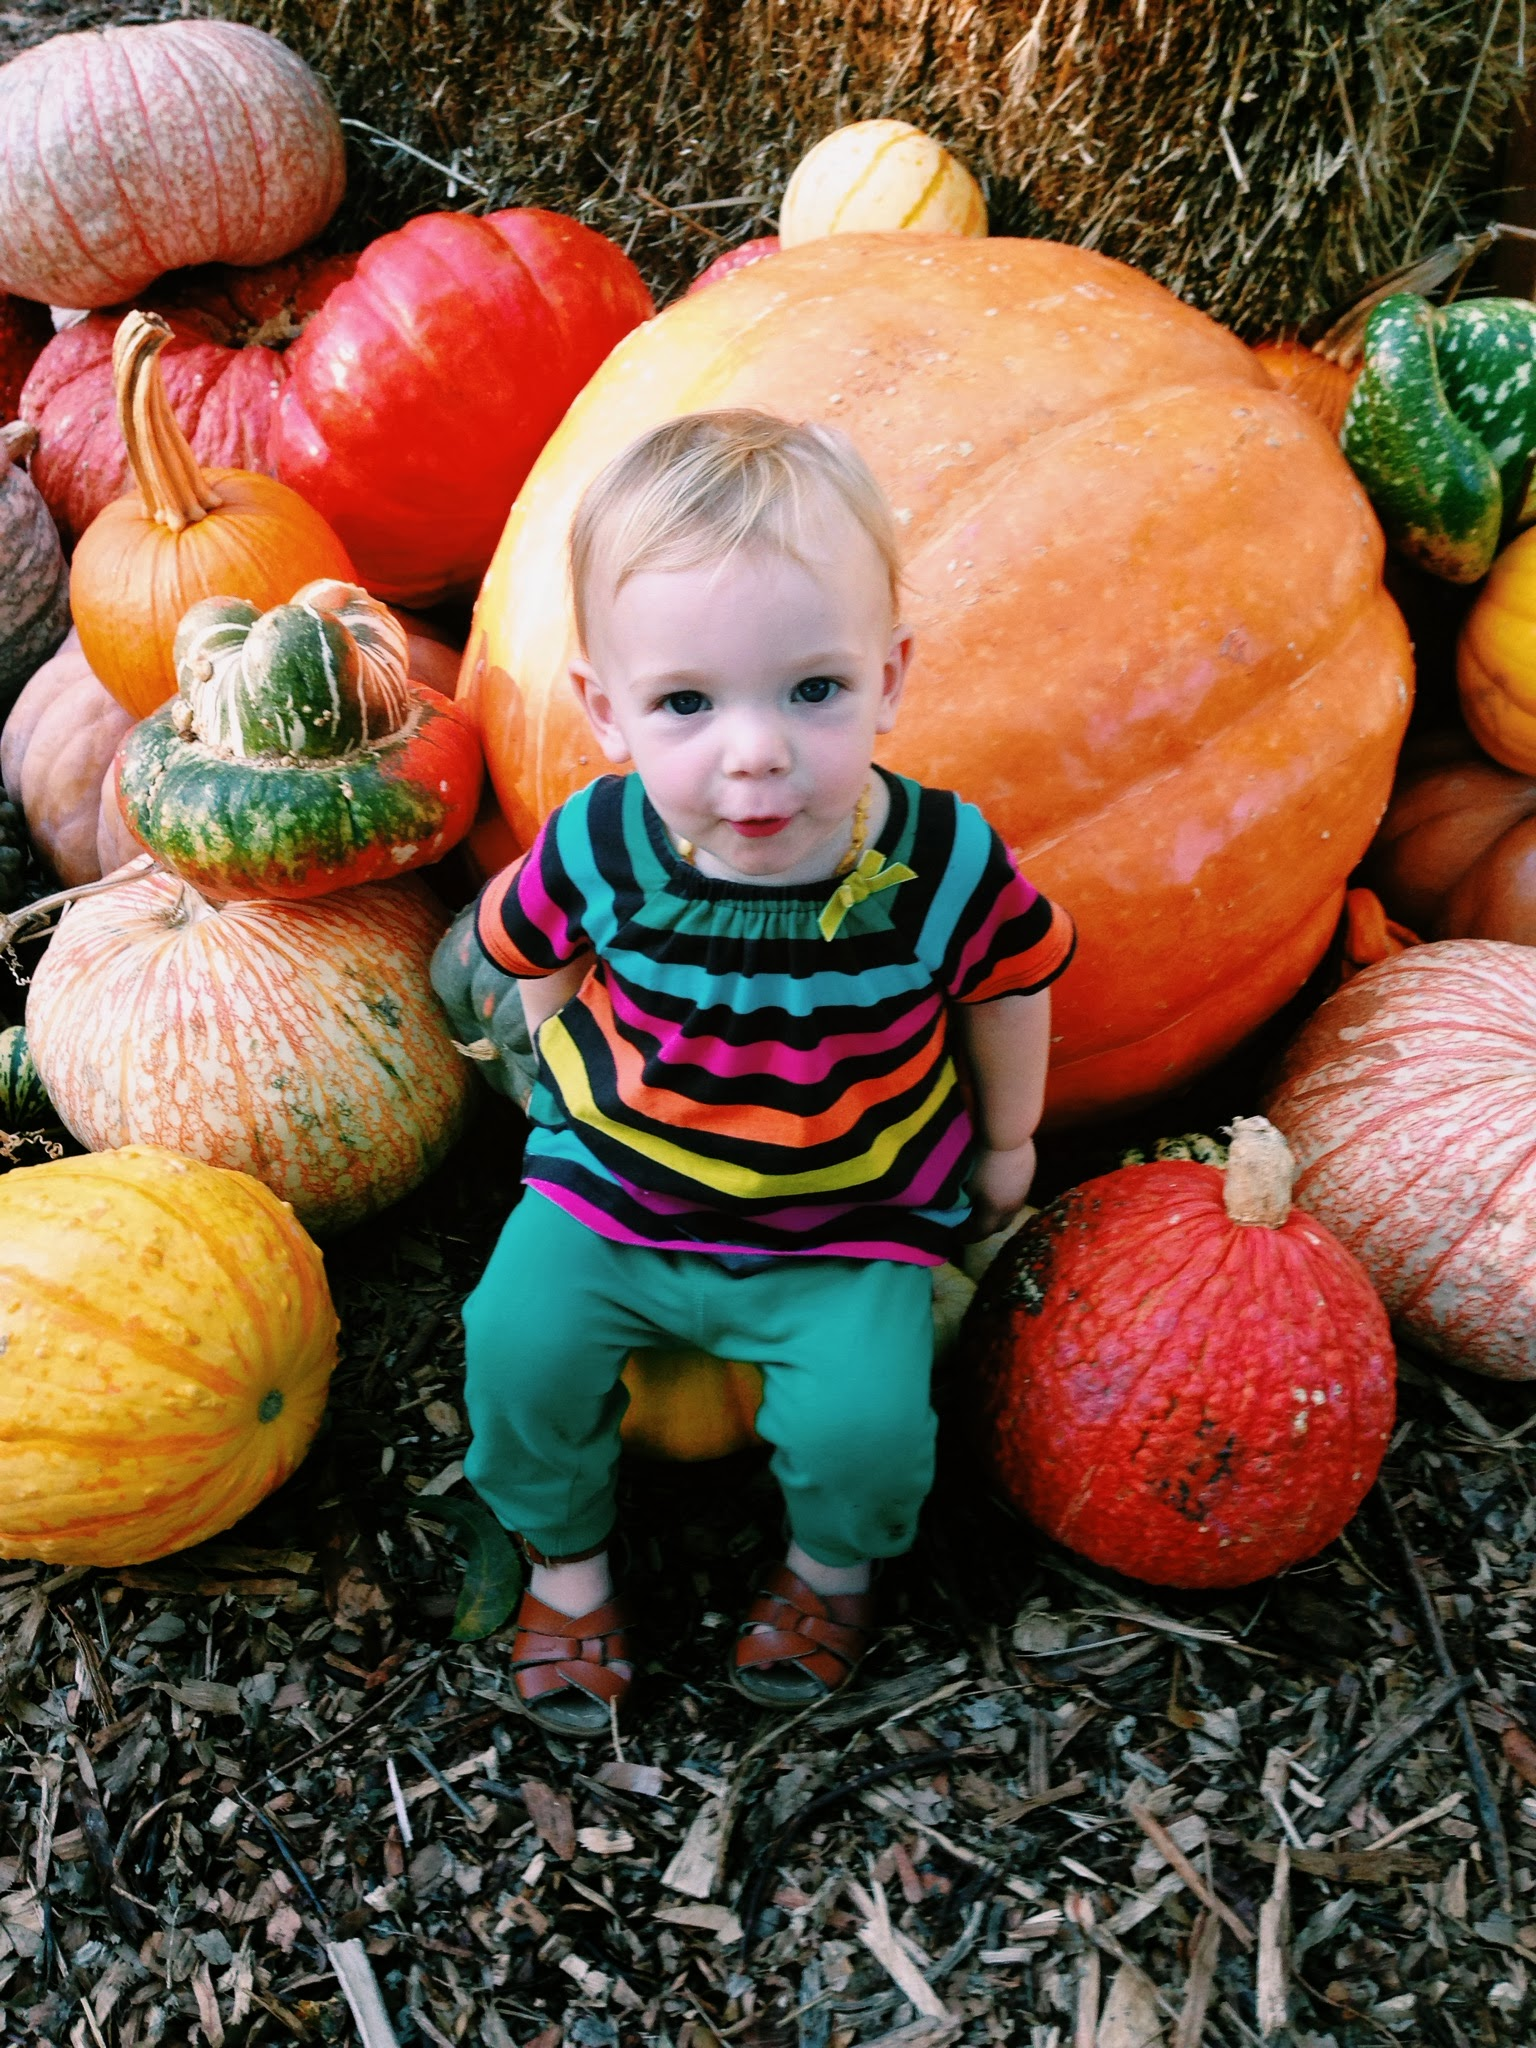 Pumpkin Village at the Dallas Arboretum - Sept 2013